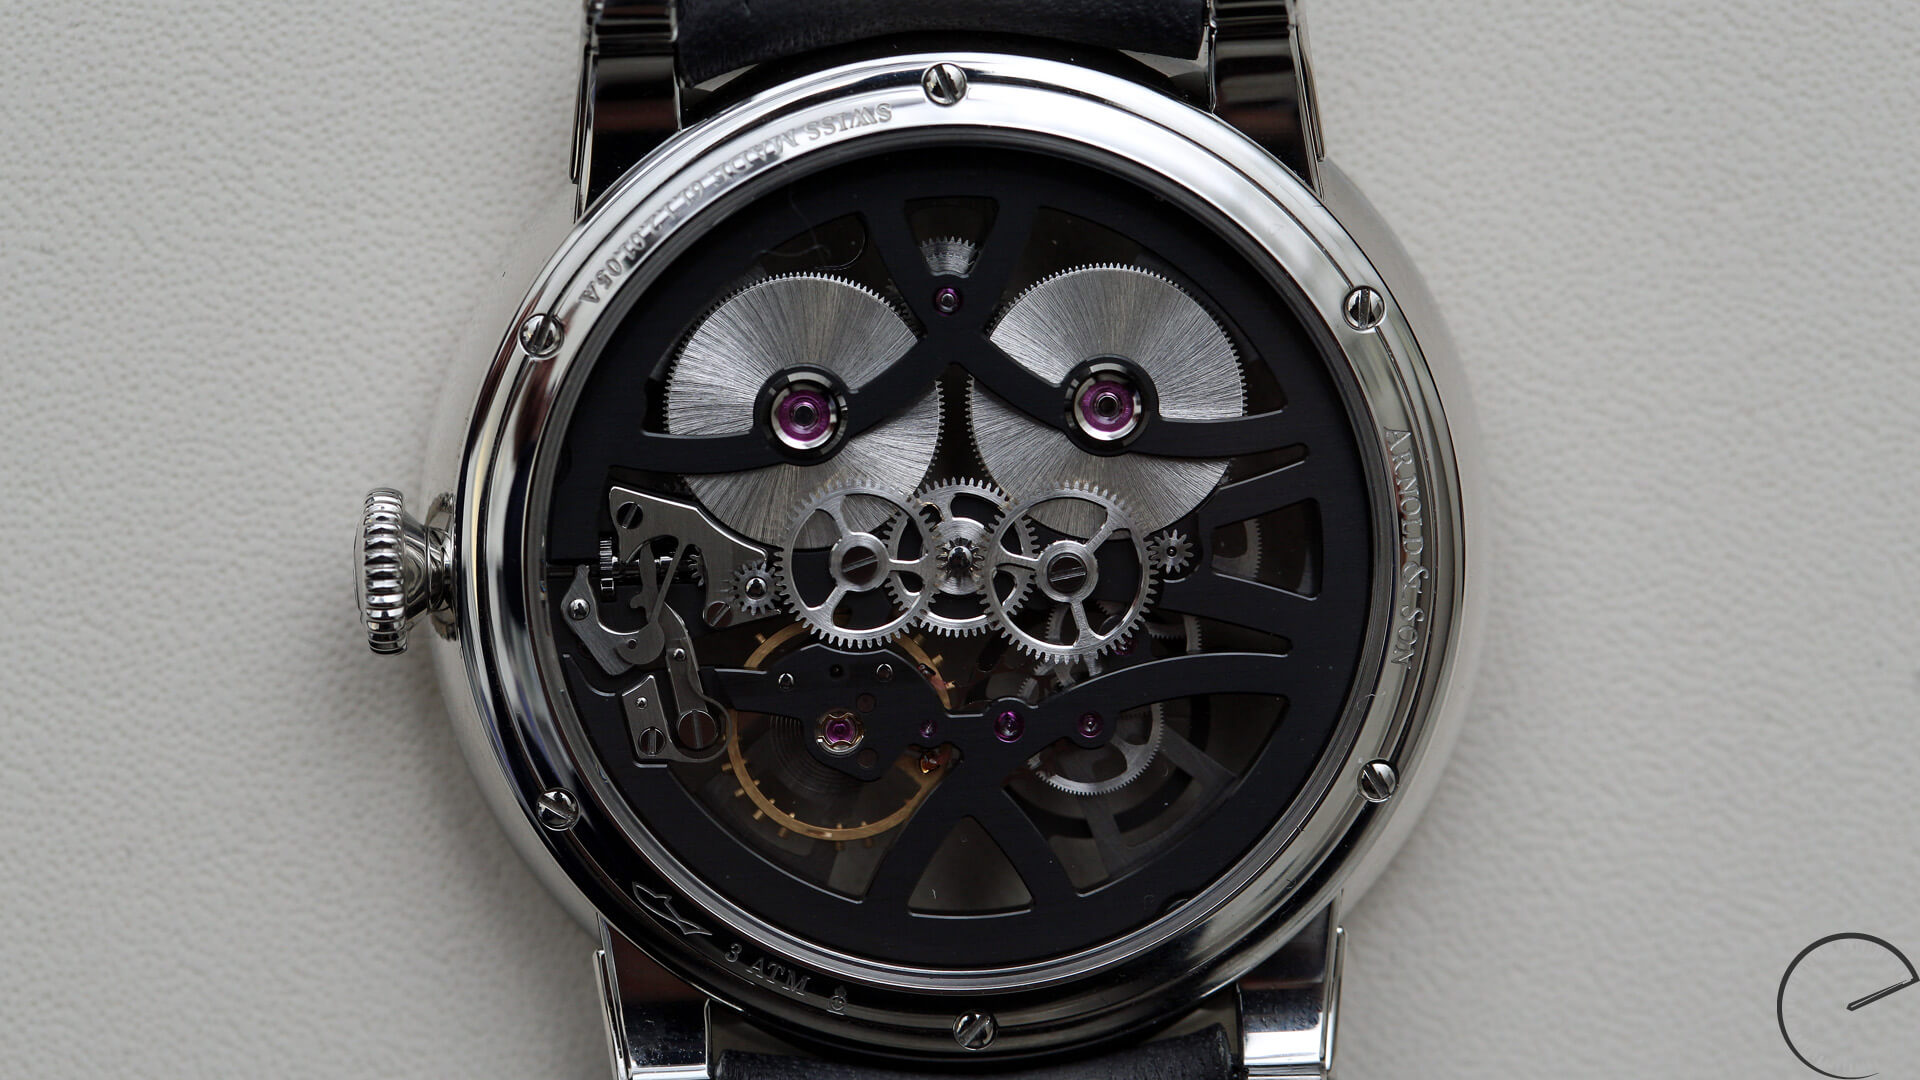 Arnold_and_Son_Nebula_caseback - ESCAPEMENT magazine - watch reviews by Angus Davies